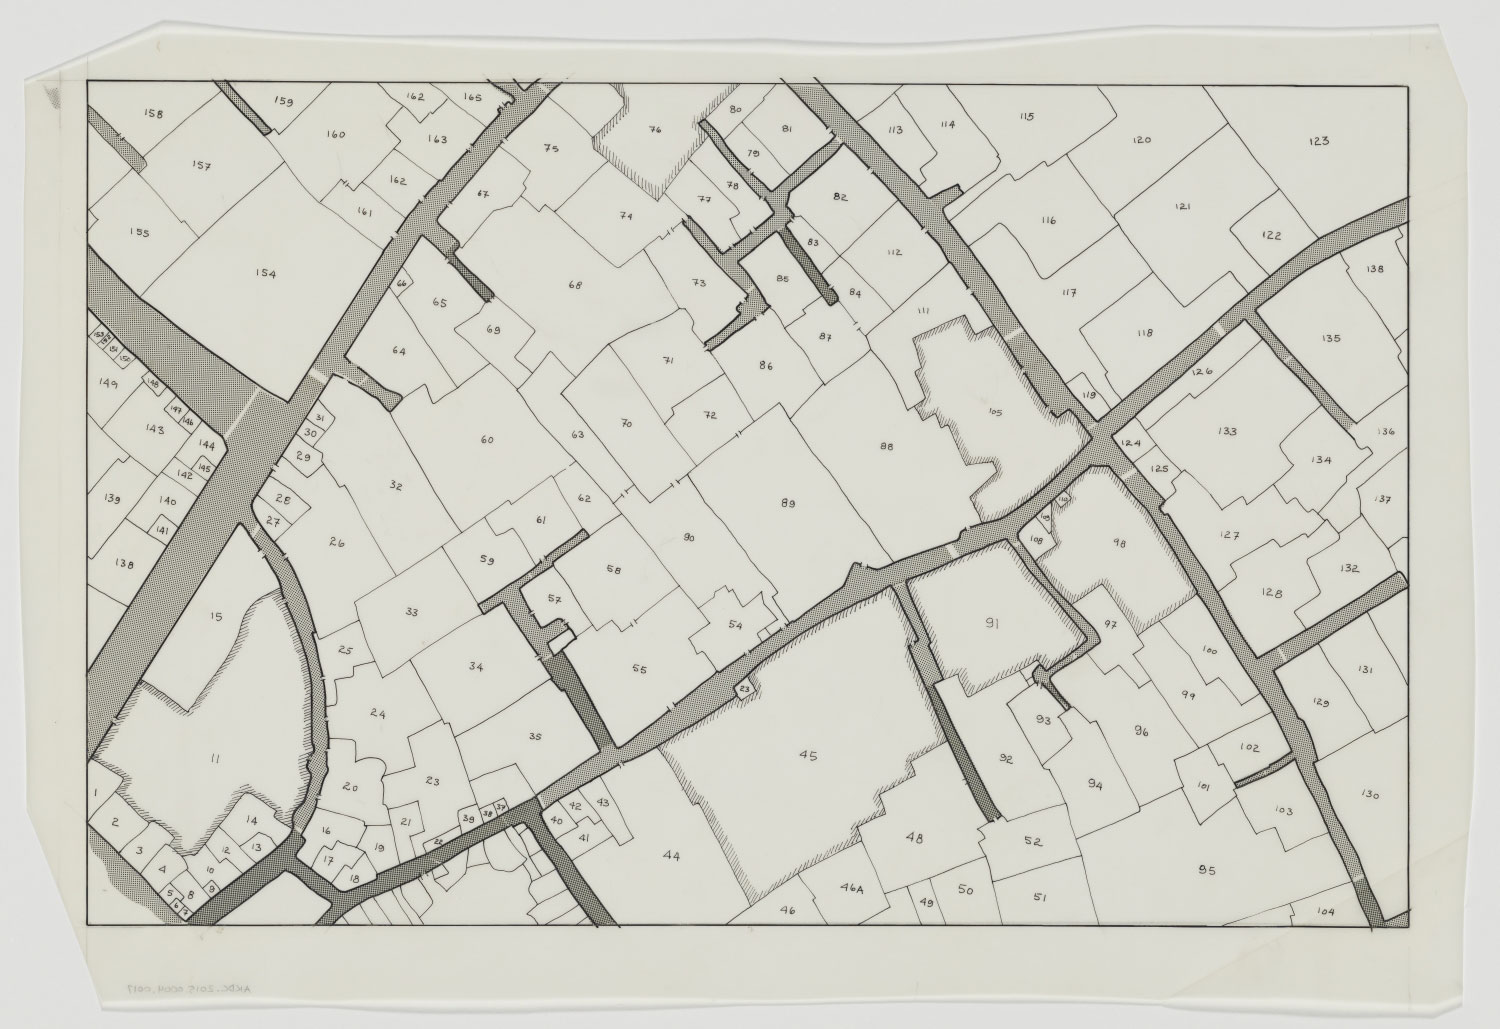 Collections | Projects | Isfahan Urban History Project | Map of lots ...